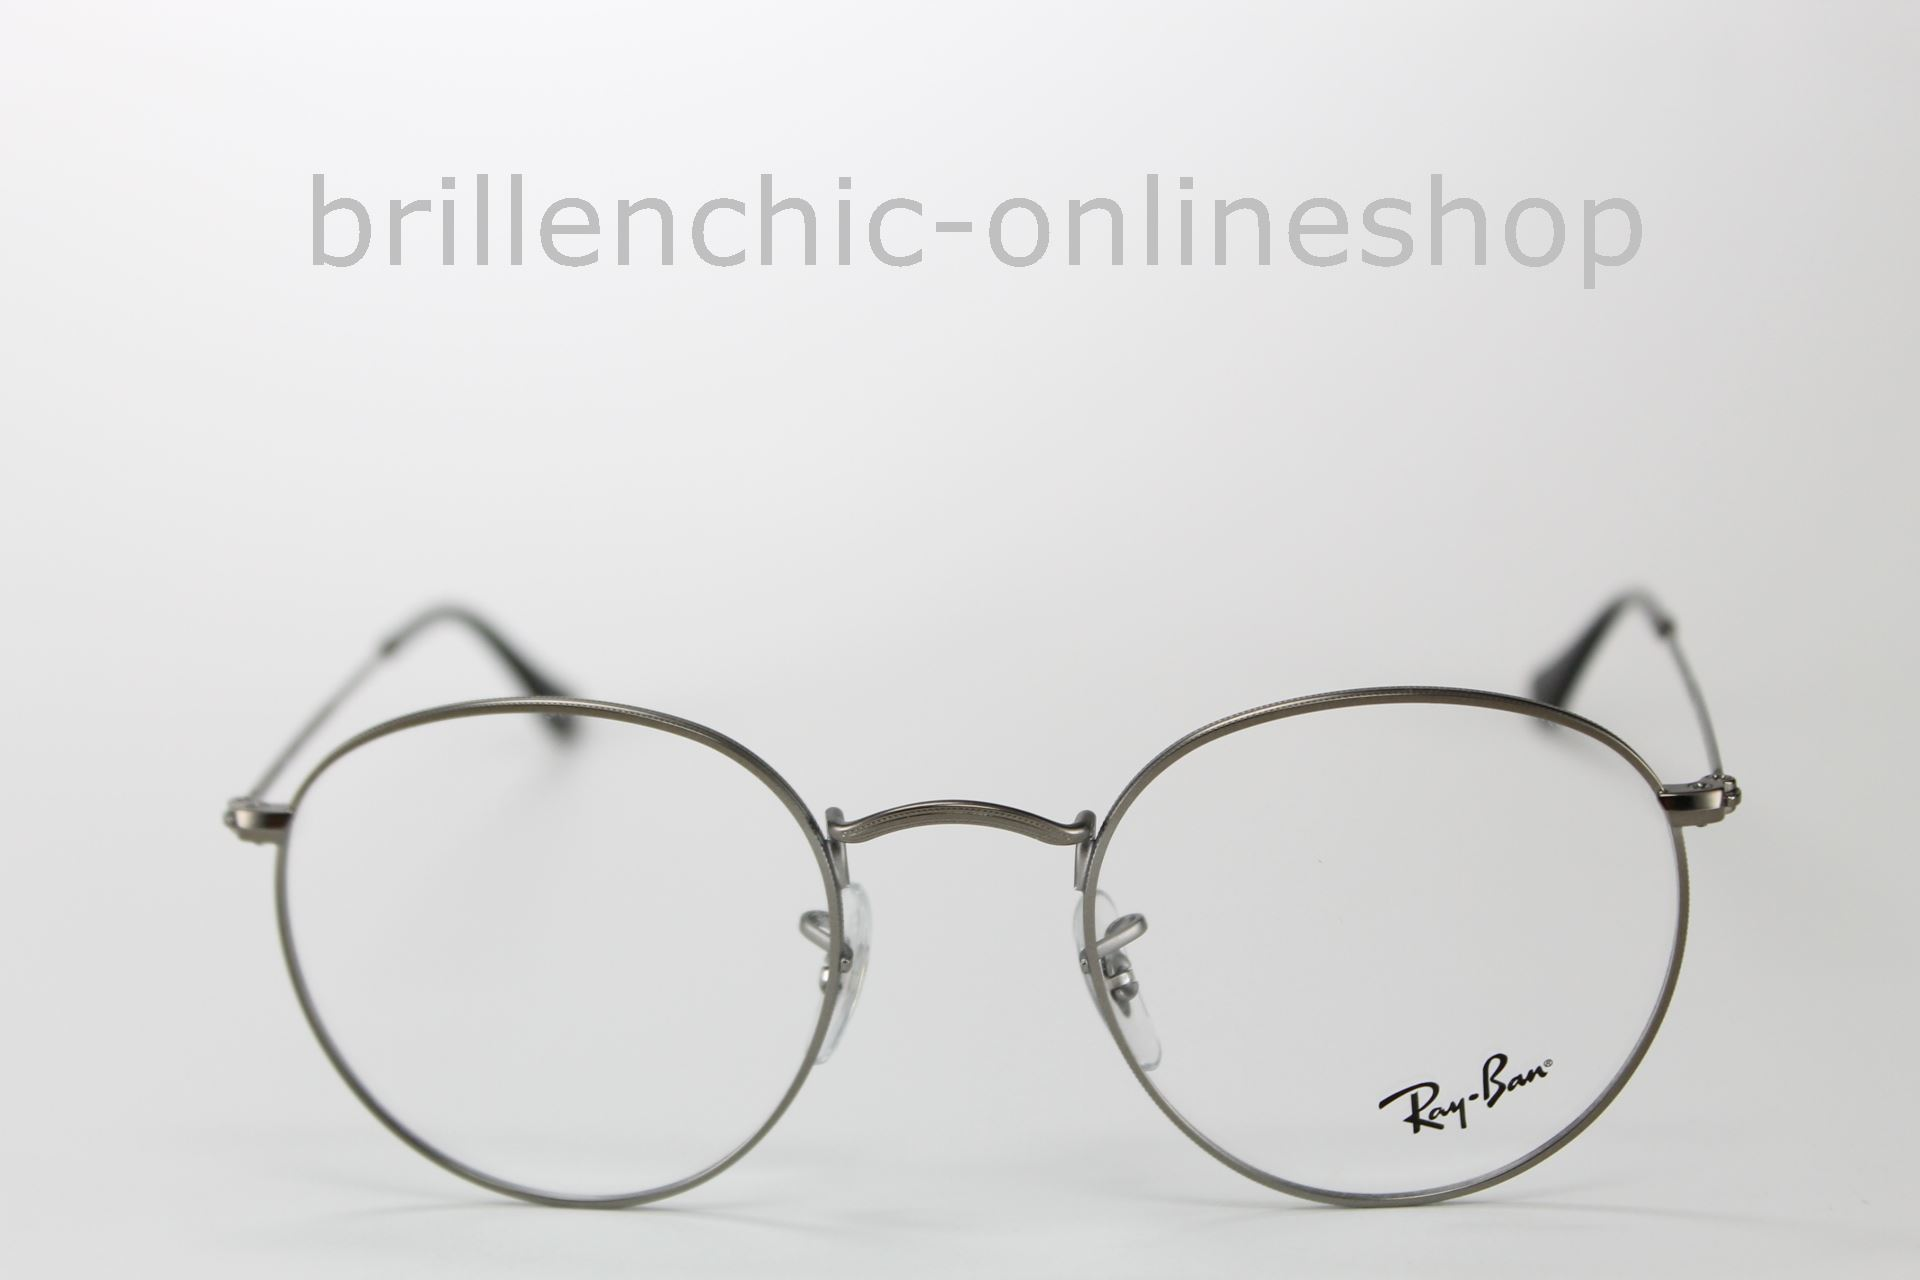 00e7074bbad Brillenchic-onlineshop in Berlin - Ray Ban RB 3447V 3447 2620 ROUND ...